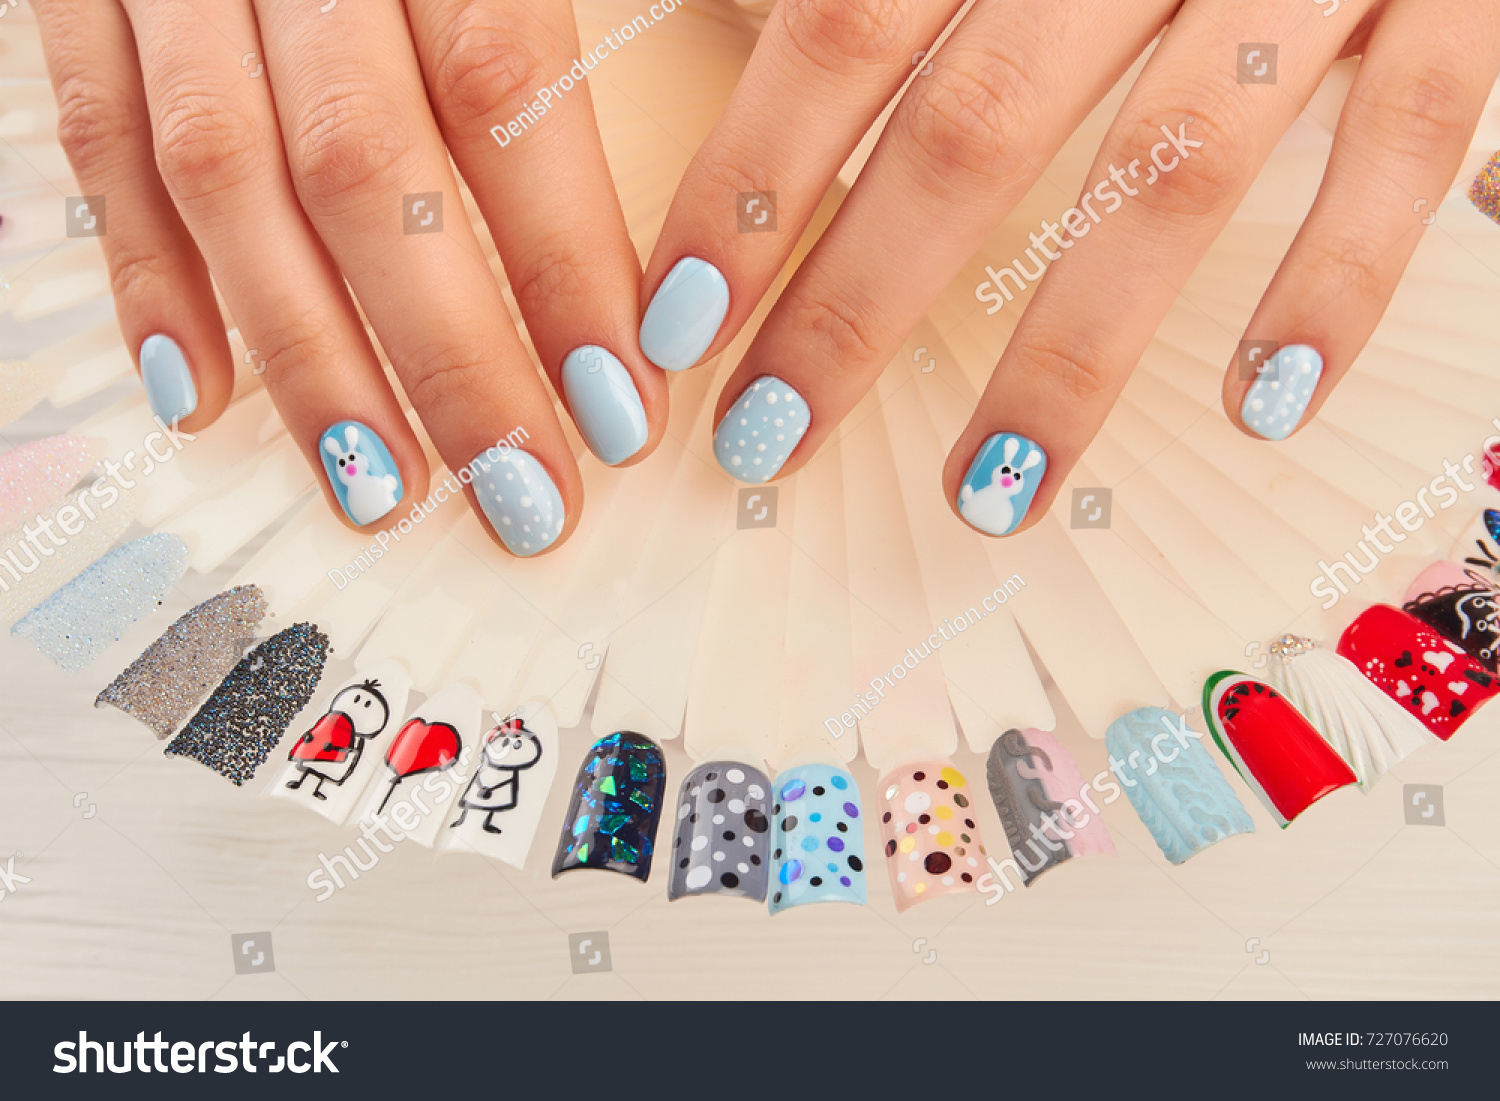 Manicured Hands Nail Art Samples Woman Stock Photo (Royalty Free ...